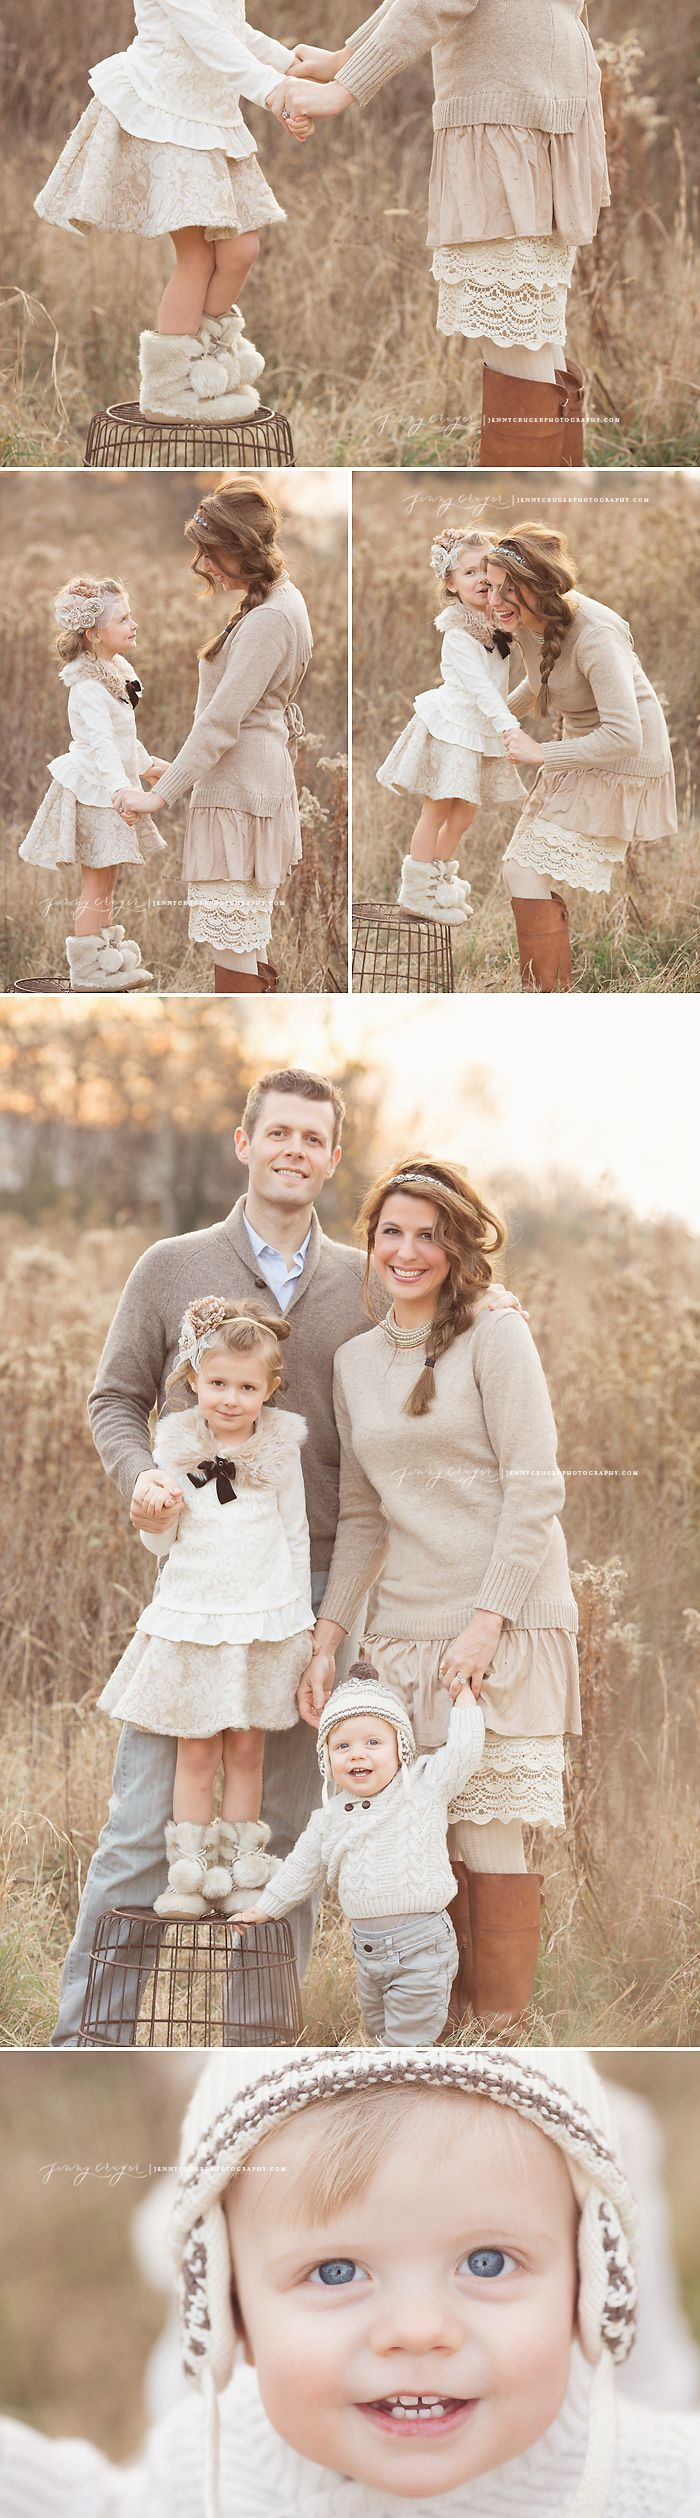 Beautiful family session by Jennie Cruger Photography! Love the family's outfits!